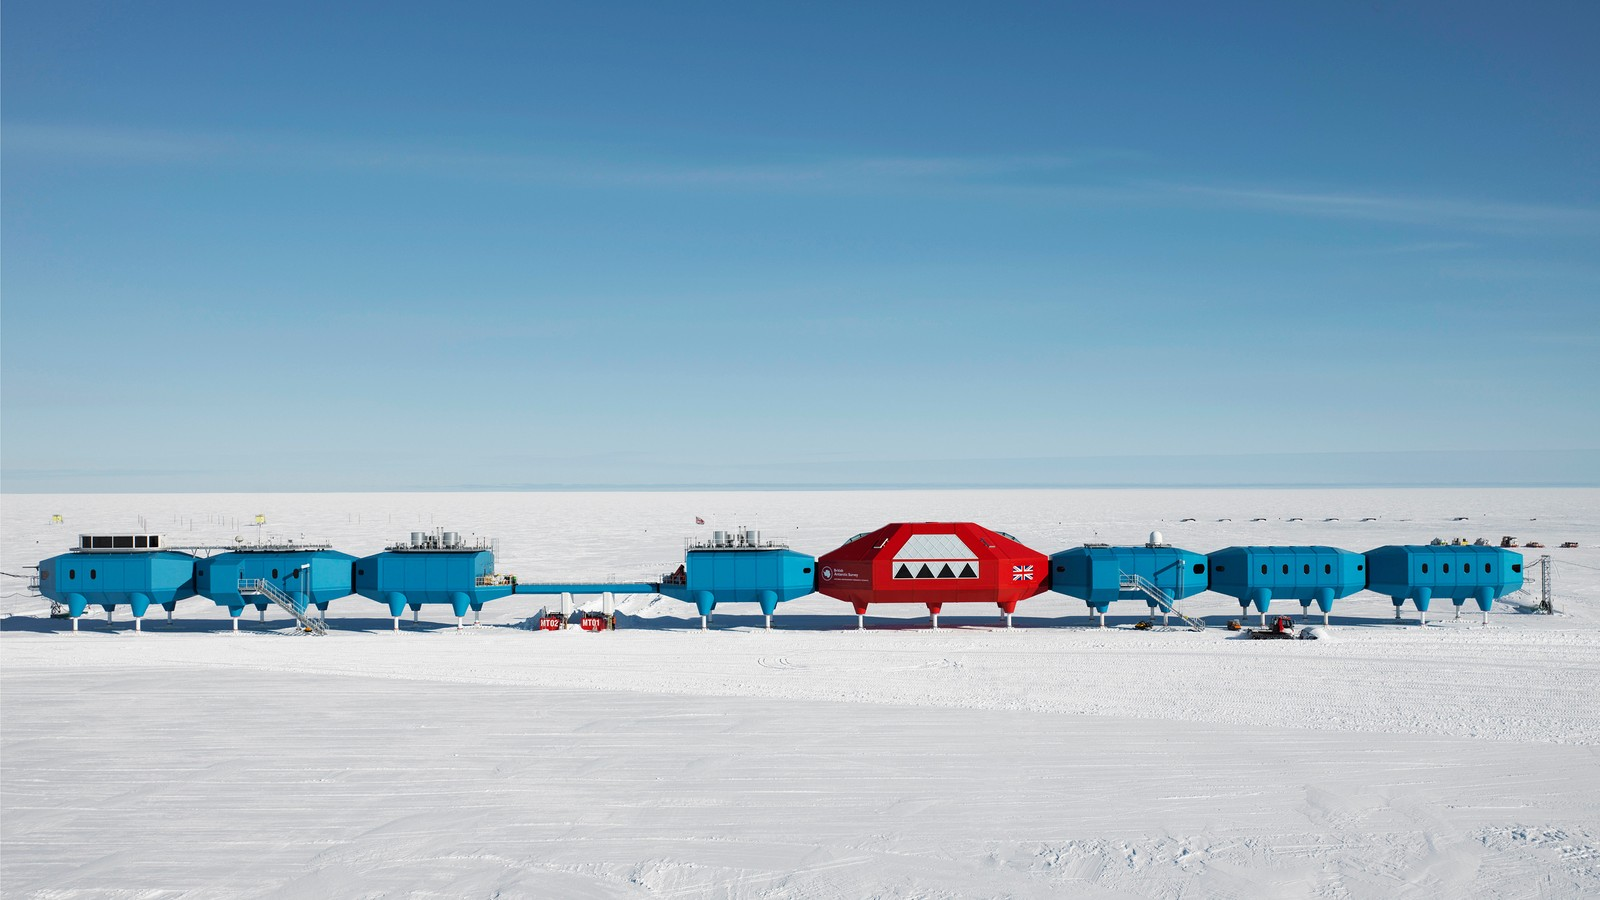 Halley VI British Antarctic Research Station 1